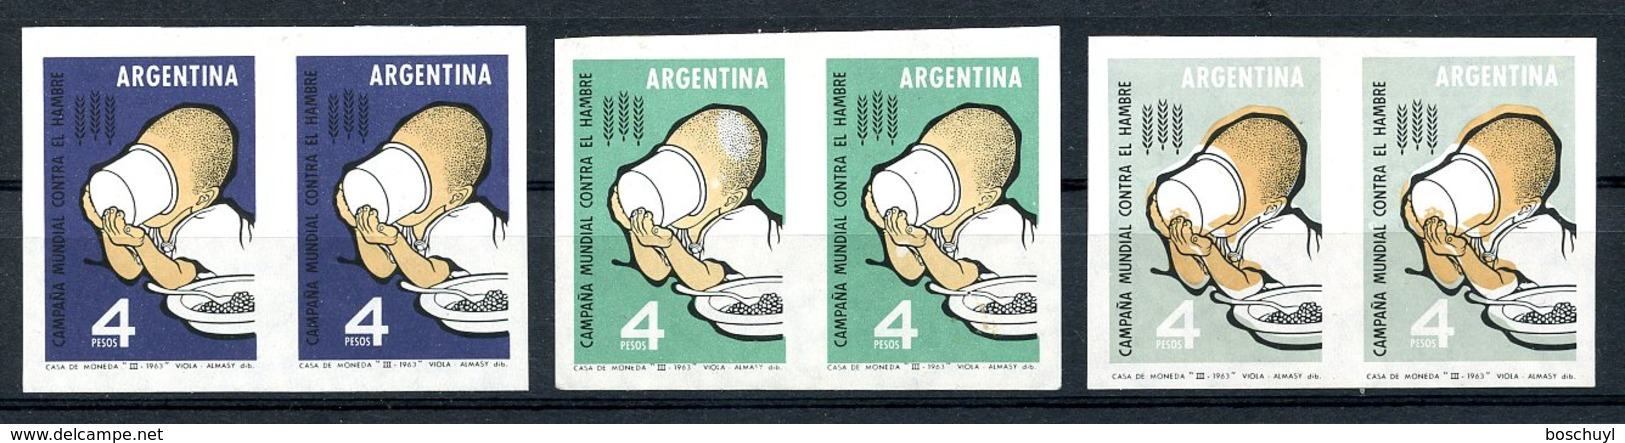 Argentina, 1963, Freedom From Hunger, United Nations, MLH Imperforated Color Proofs, Michel 813 - Argentina